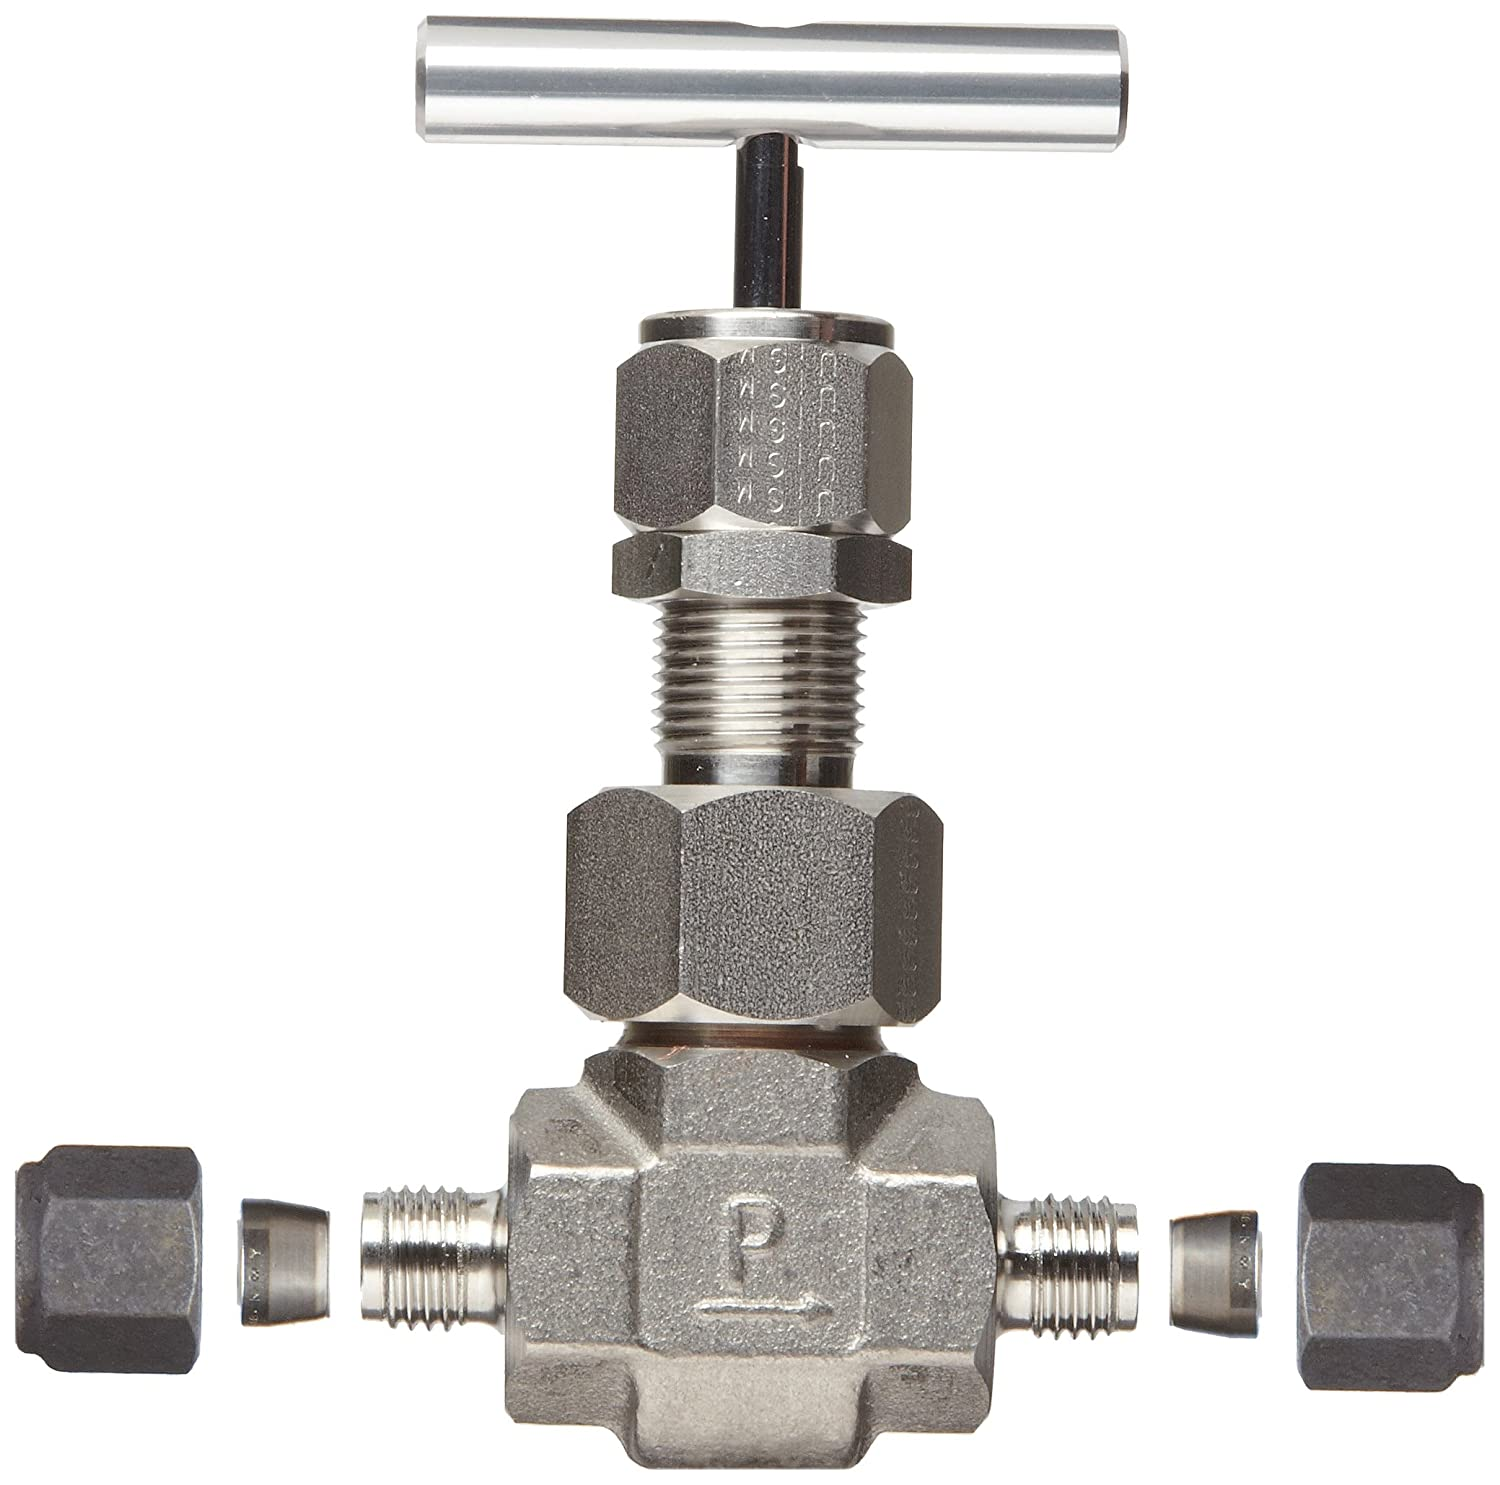 Regulating Stem Parker U Series Stainless Steel 316 High Temperature Needle Valve T-Bar Handle Inline 1 CPI Compression Fitting